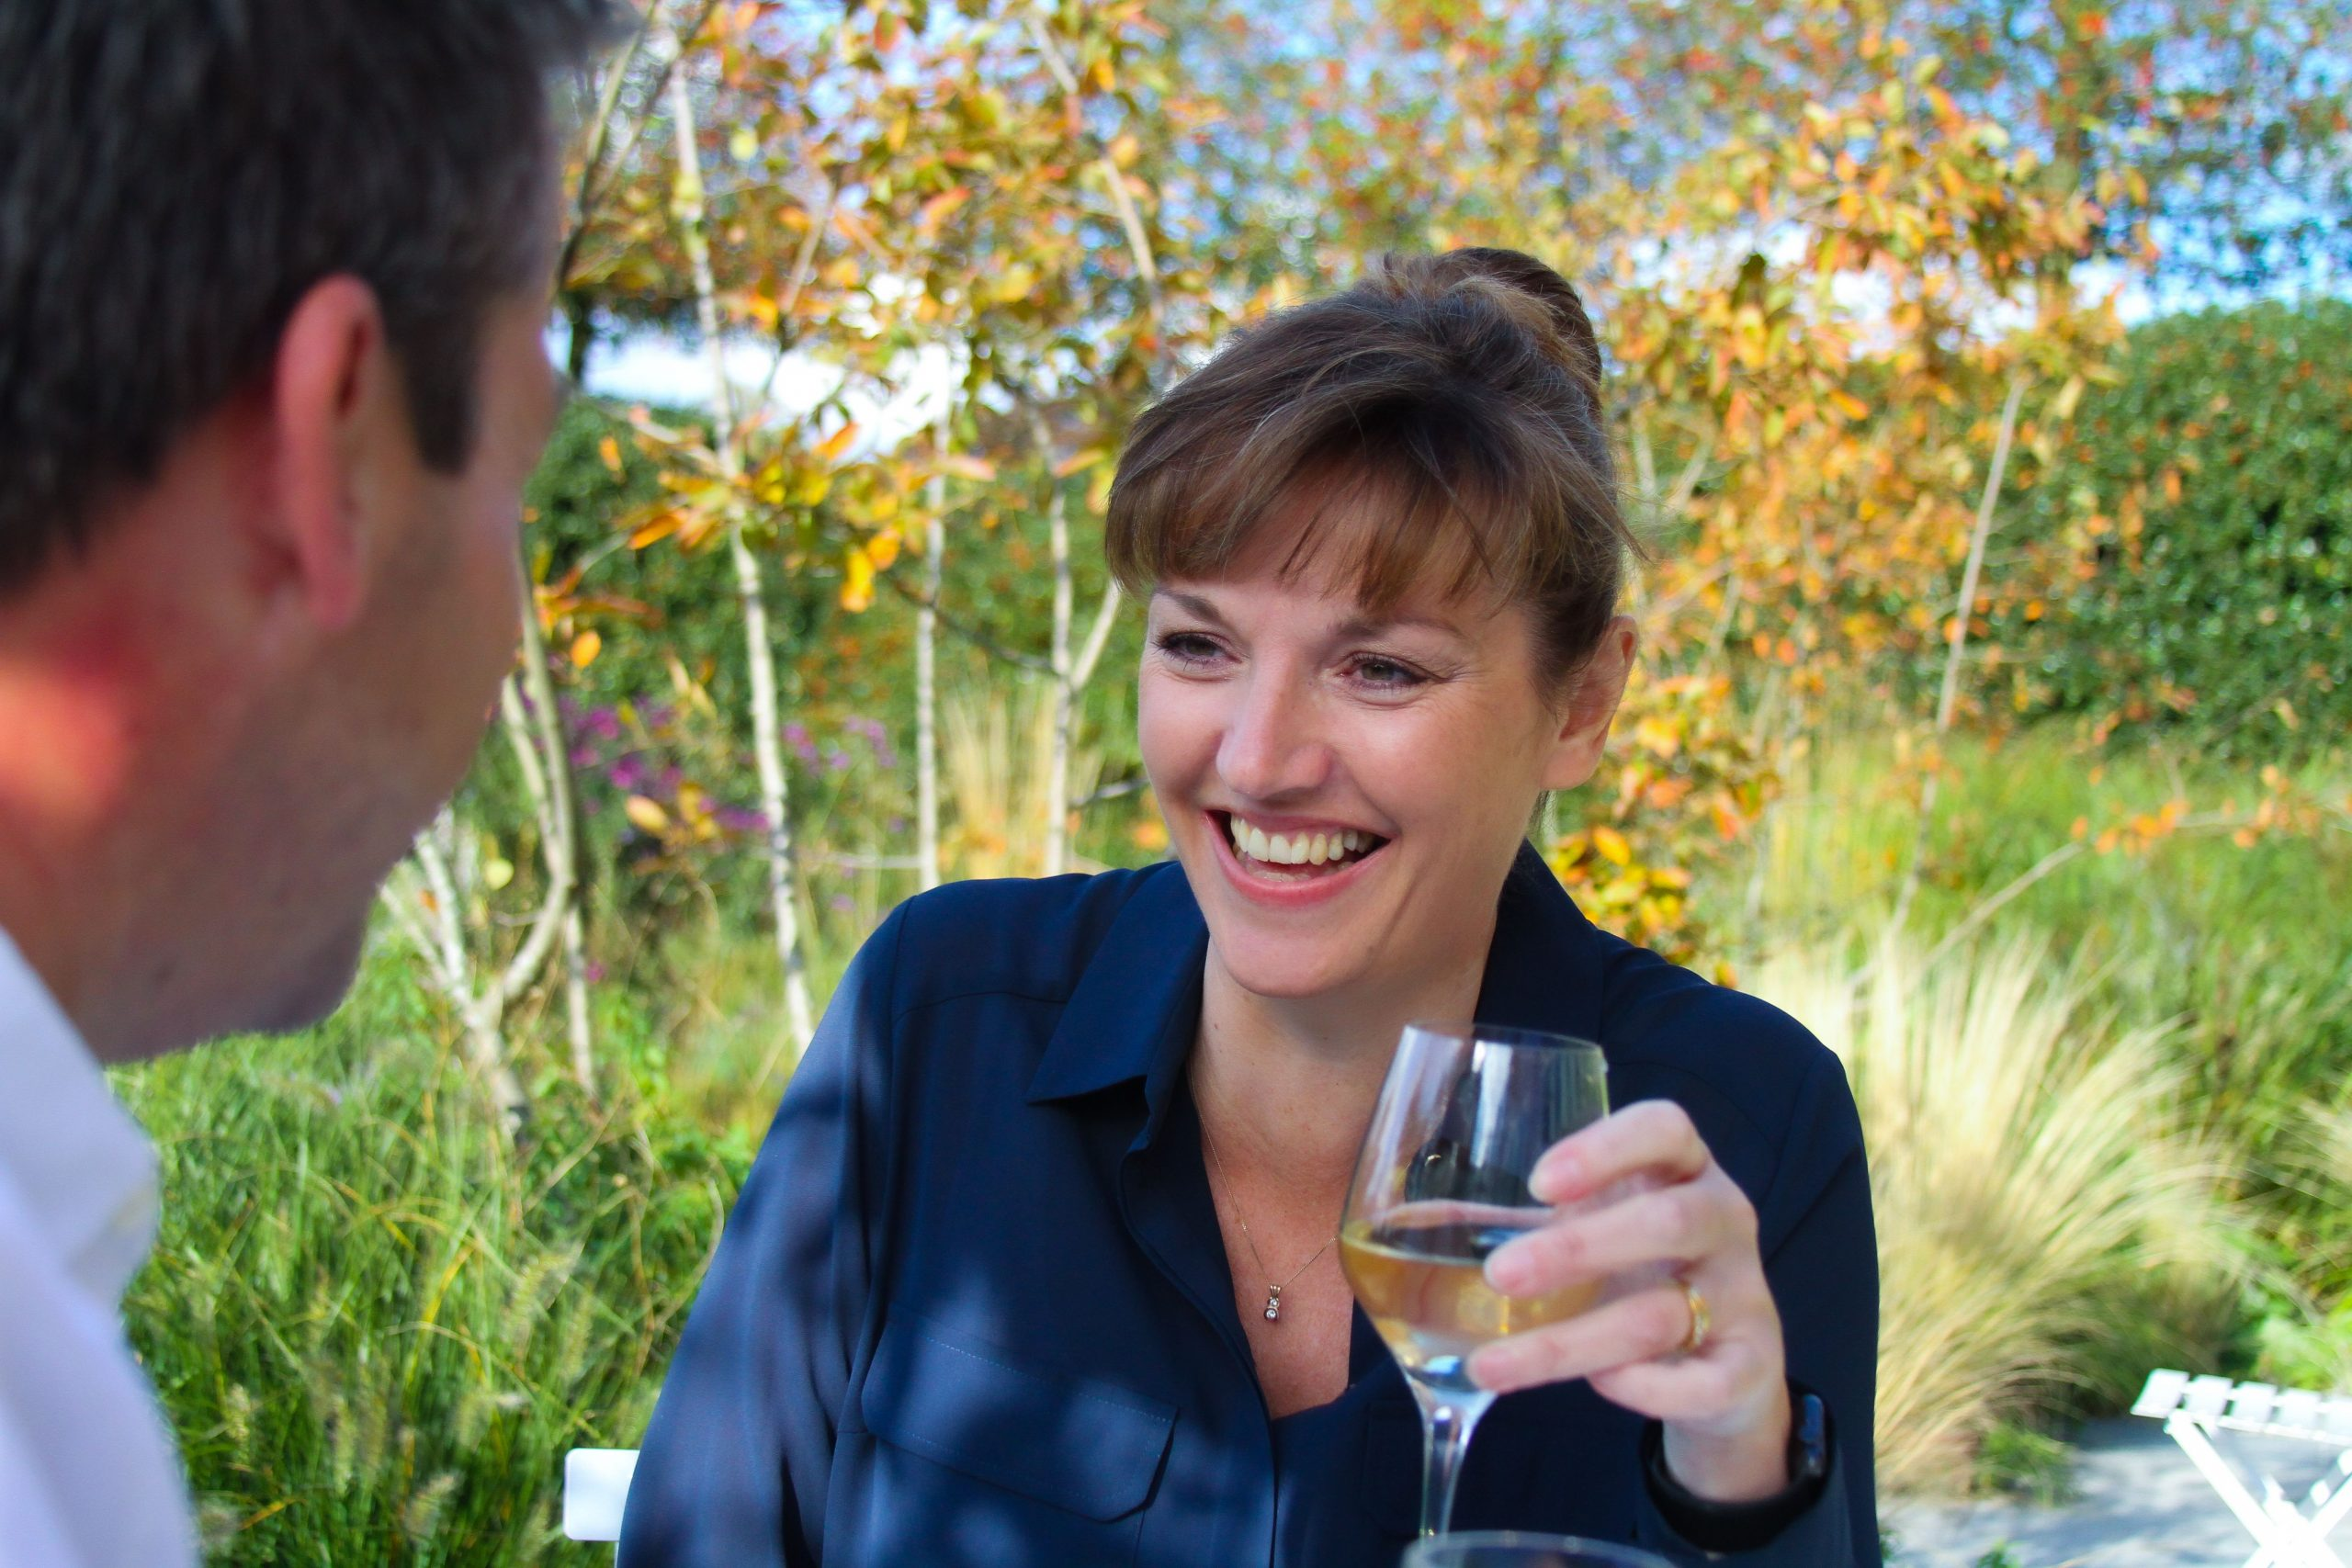 Shows woman enjoying a drink and relaxing in the garden